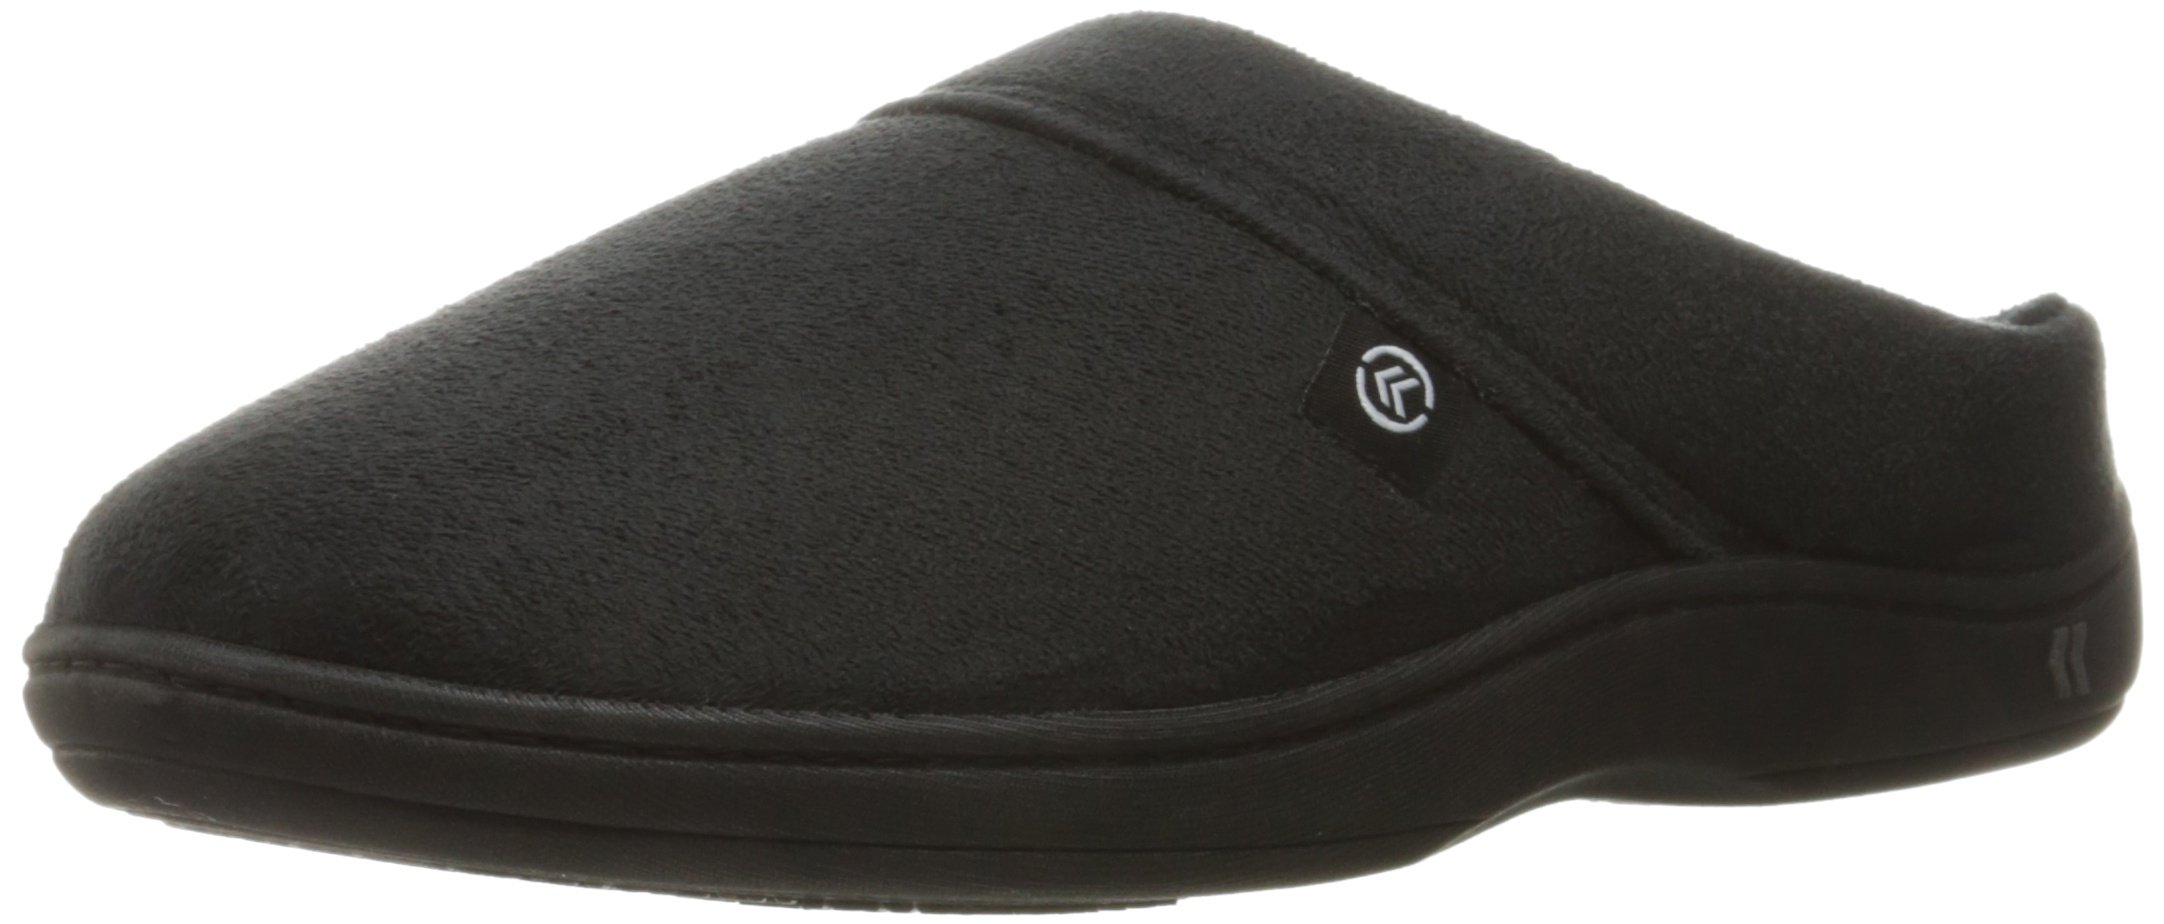 ISOTONER Men's Microsuede Devin Slip On Slipper with with Cooling Memory Foam for Indoor/Outdoor Comfort